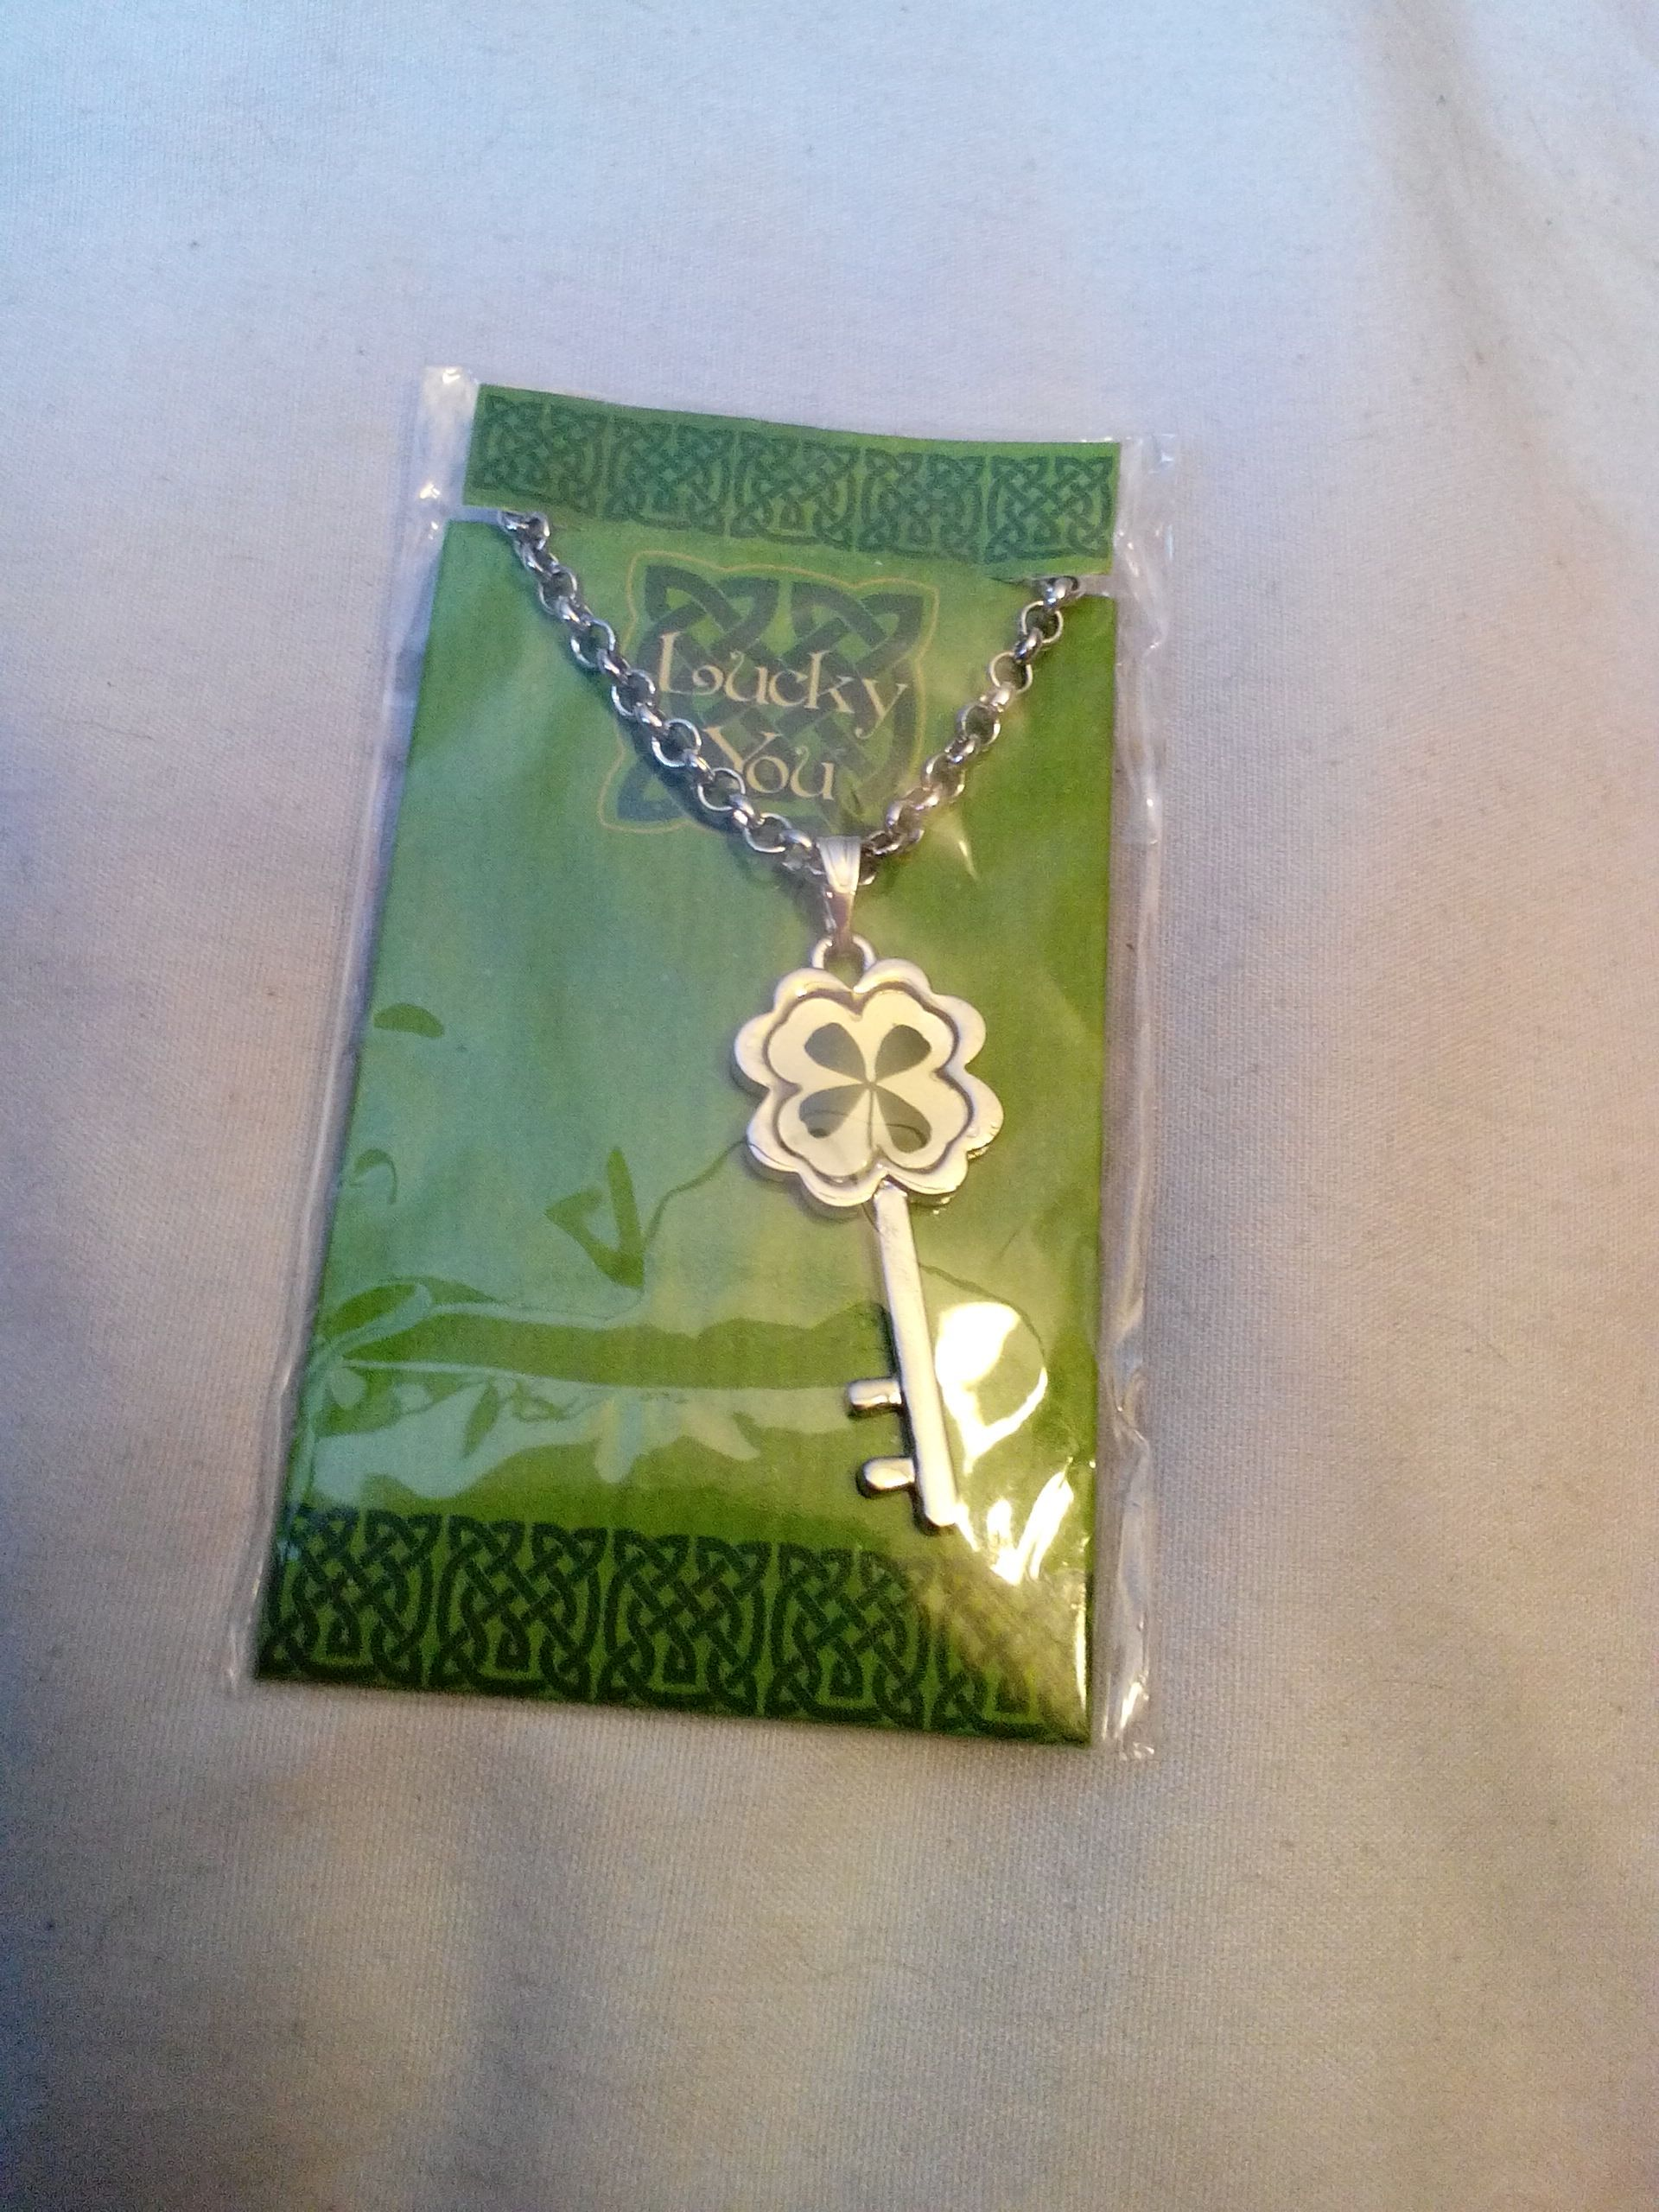 Lucky You Key Necklace Ornament front image (front cover)